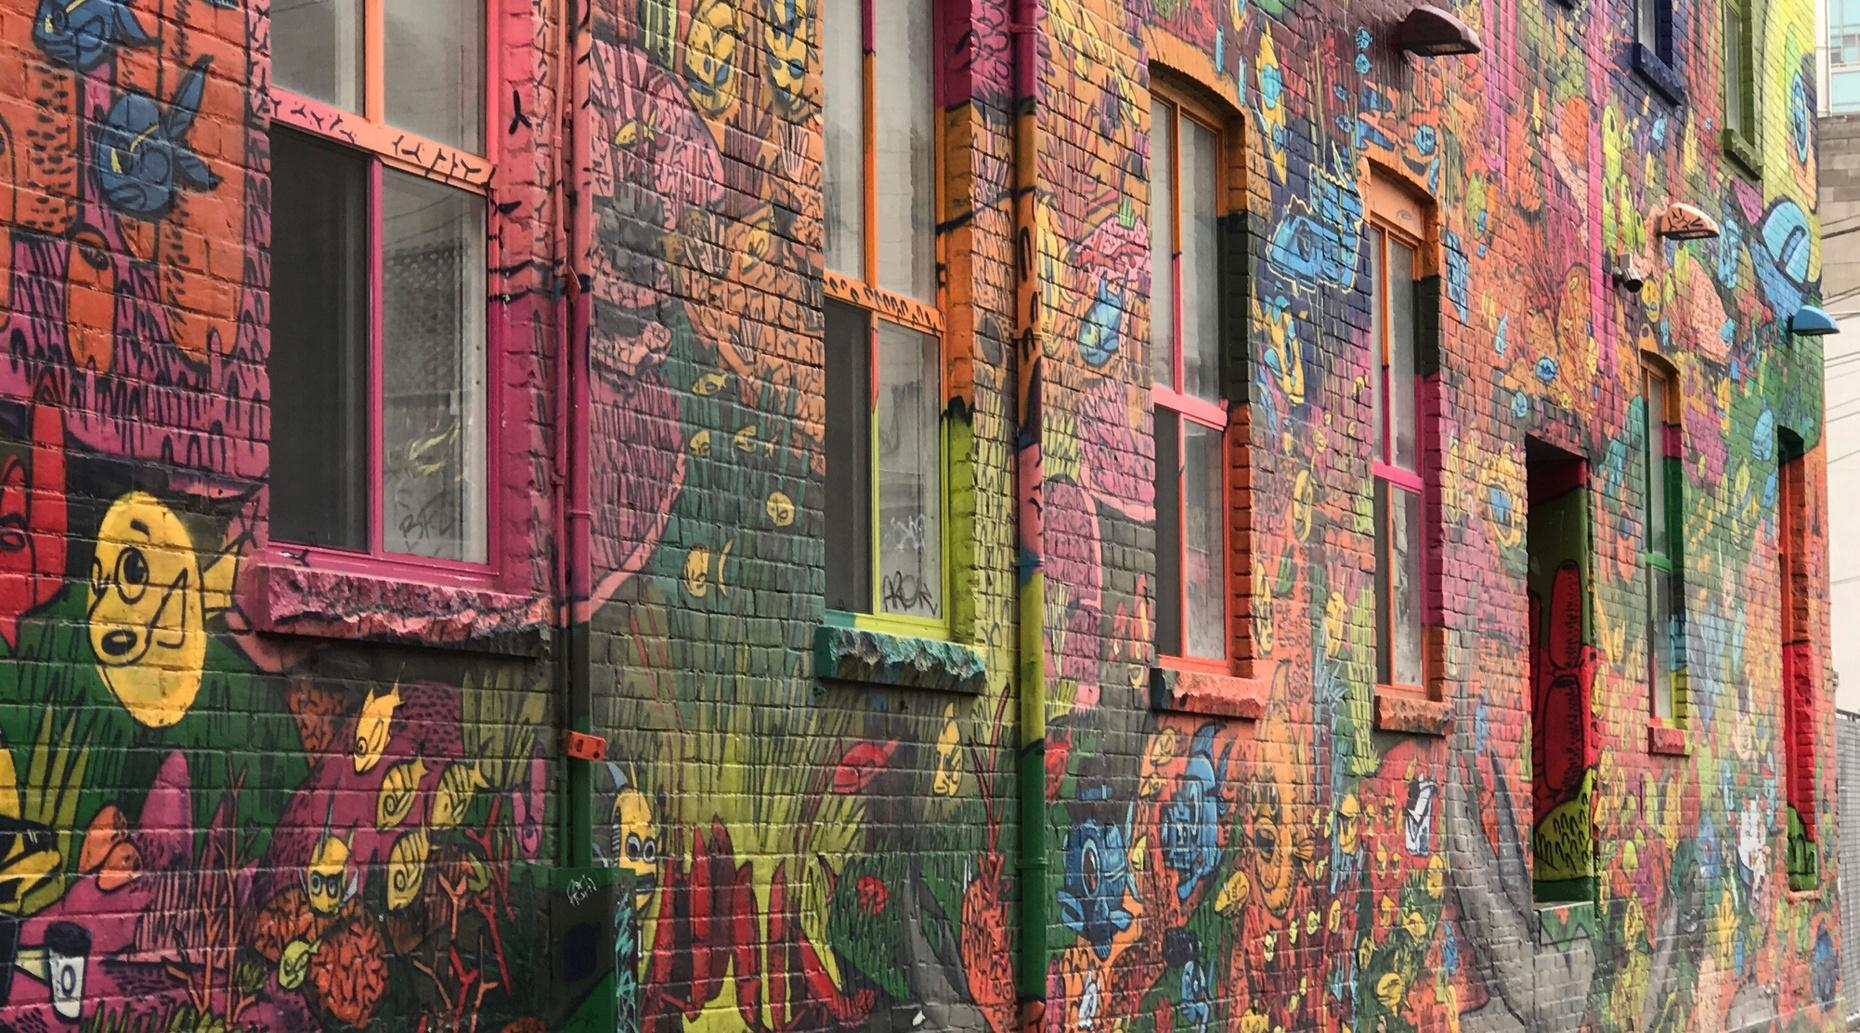 Guided Tour of Queen Street West, Chinatown and Kensington Market